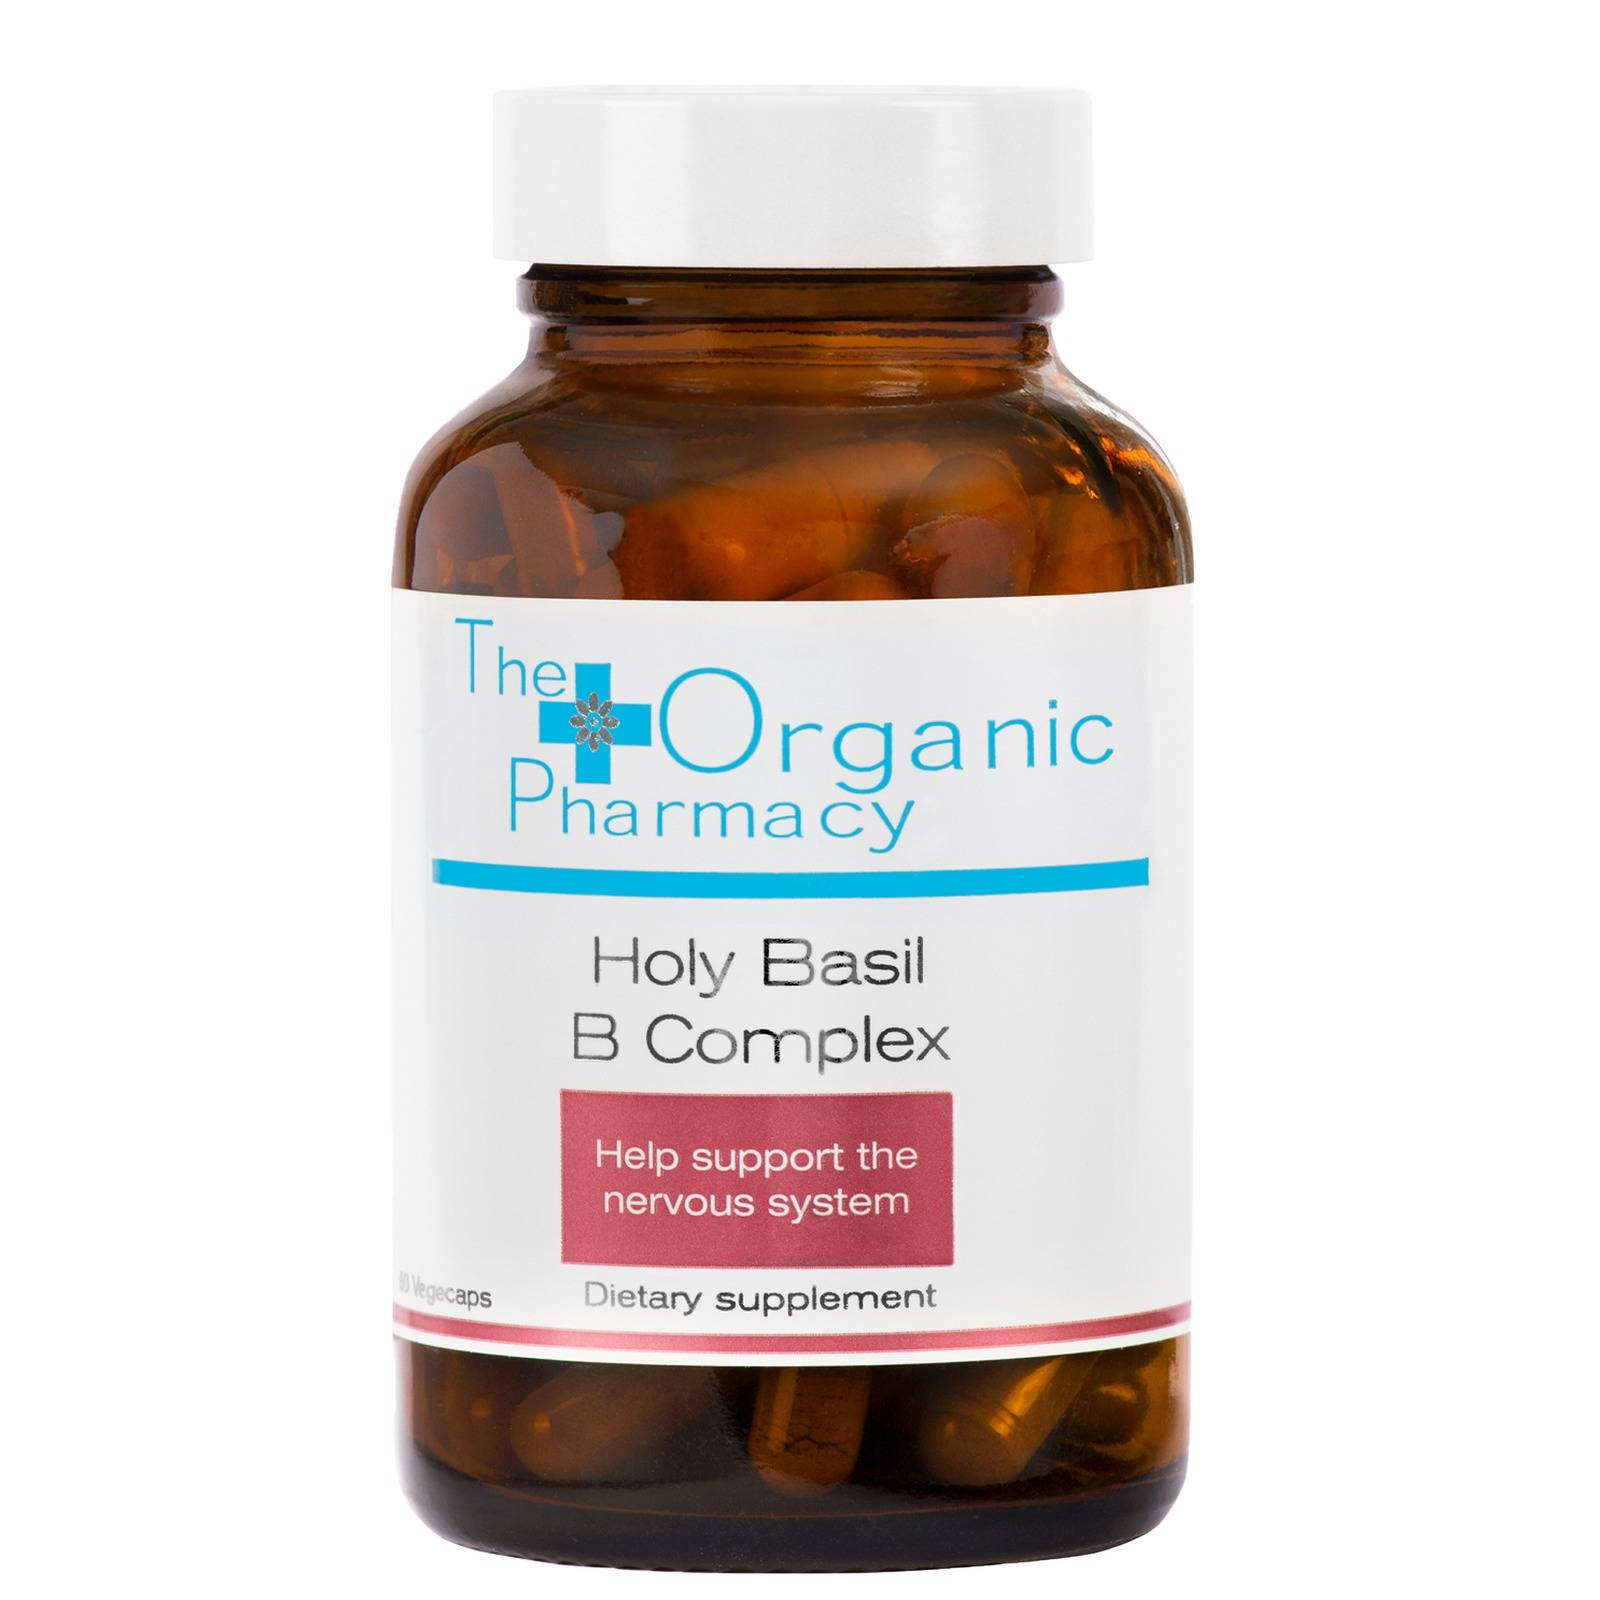 The Organic Pharmacy - Health Holy Basil B Complex 60 Capsules for Men and Women